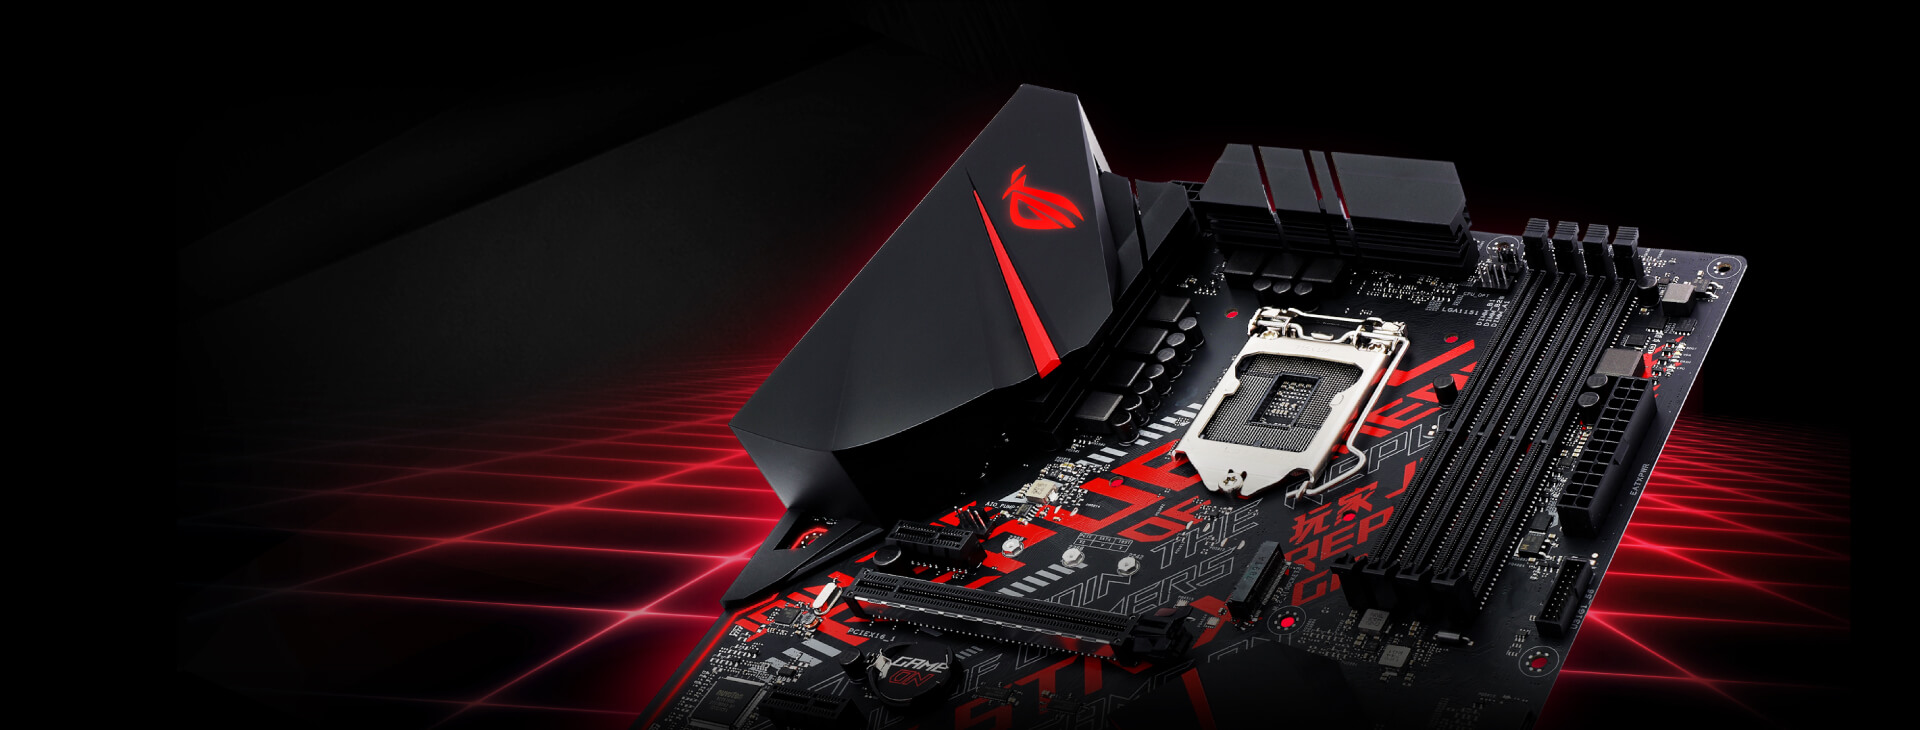 Rog Strix B360 H Gaming Motherboards Asus Usa Correspondence Of The Pins On Hdmi To Dvid Cable Cooling